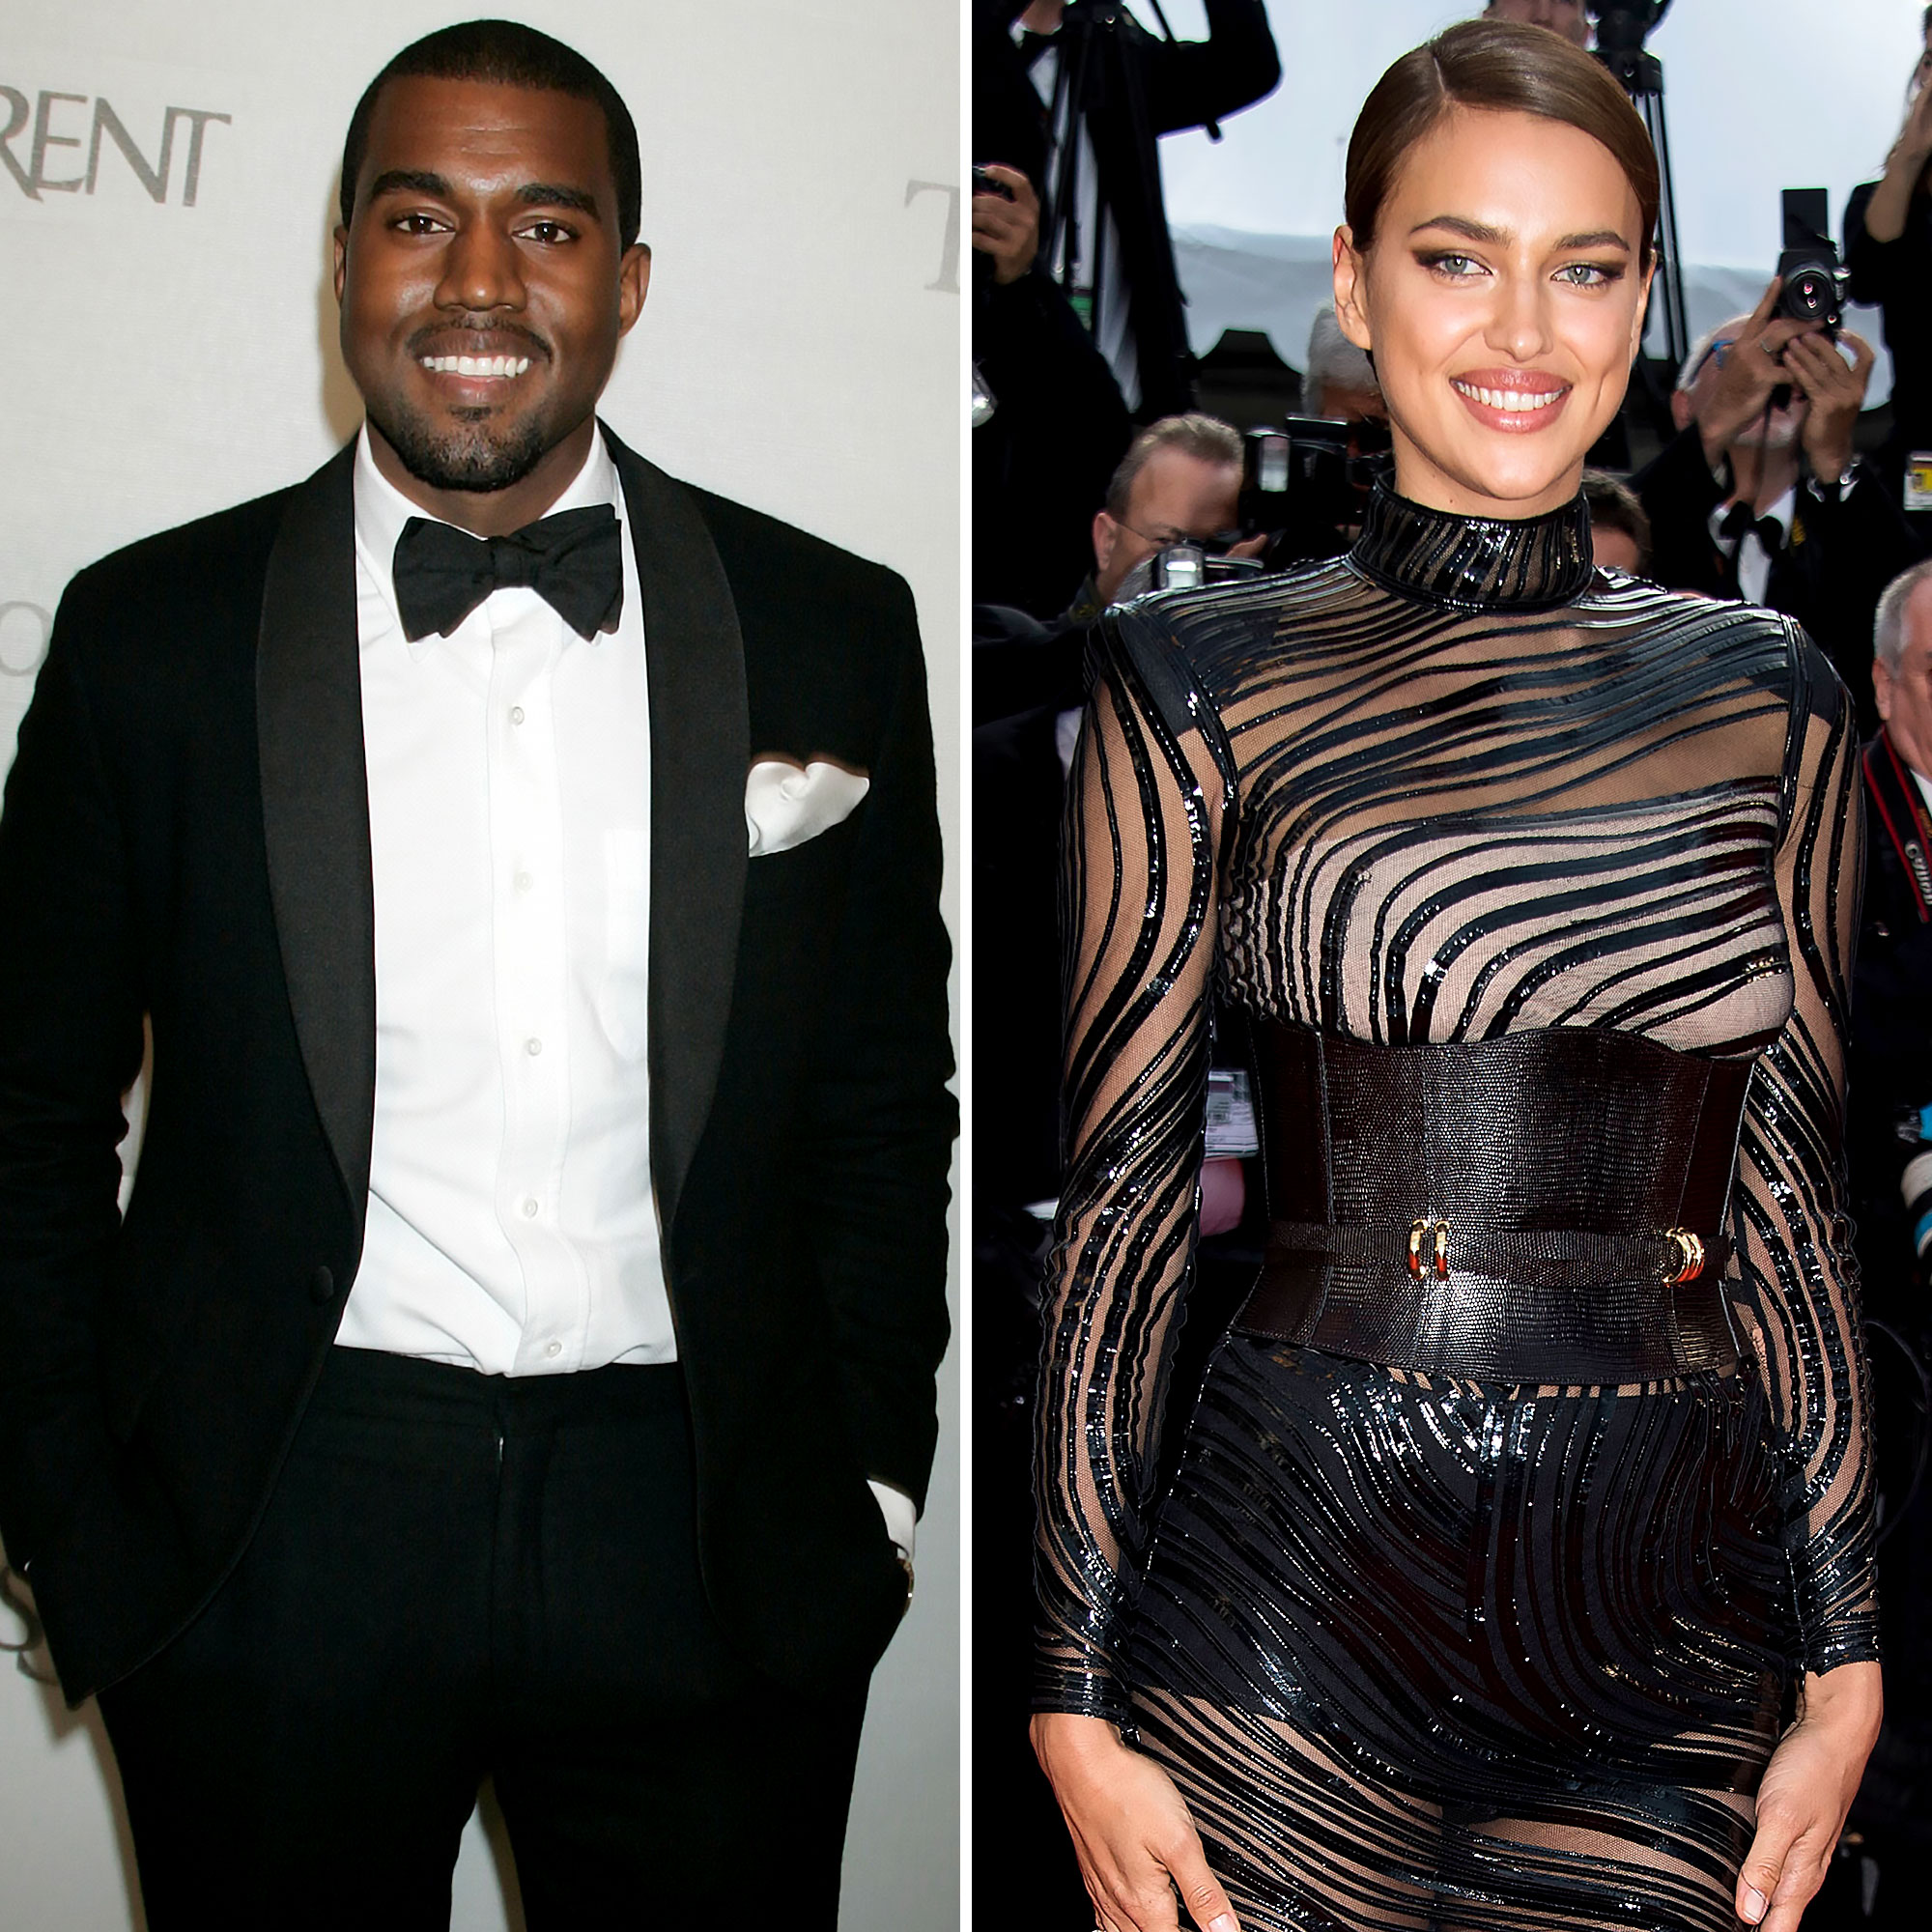 Kanye West Made the 1st Move With Irina Shayk: Details